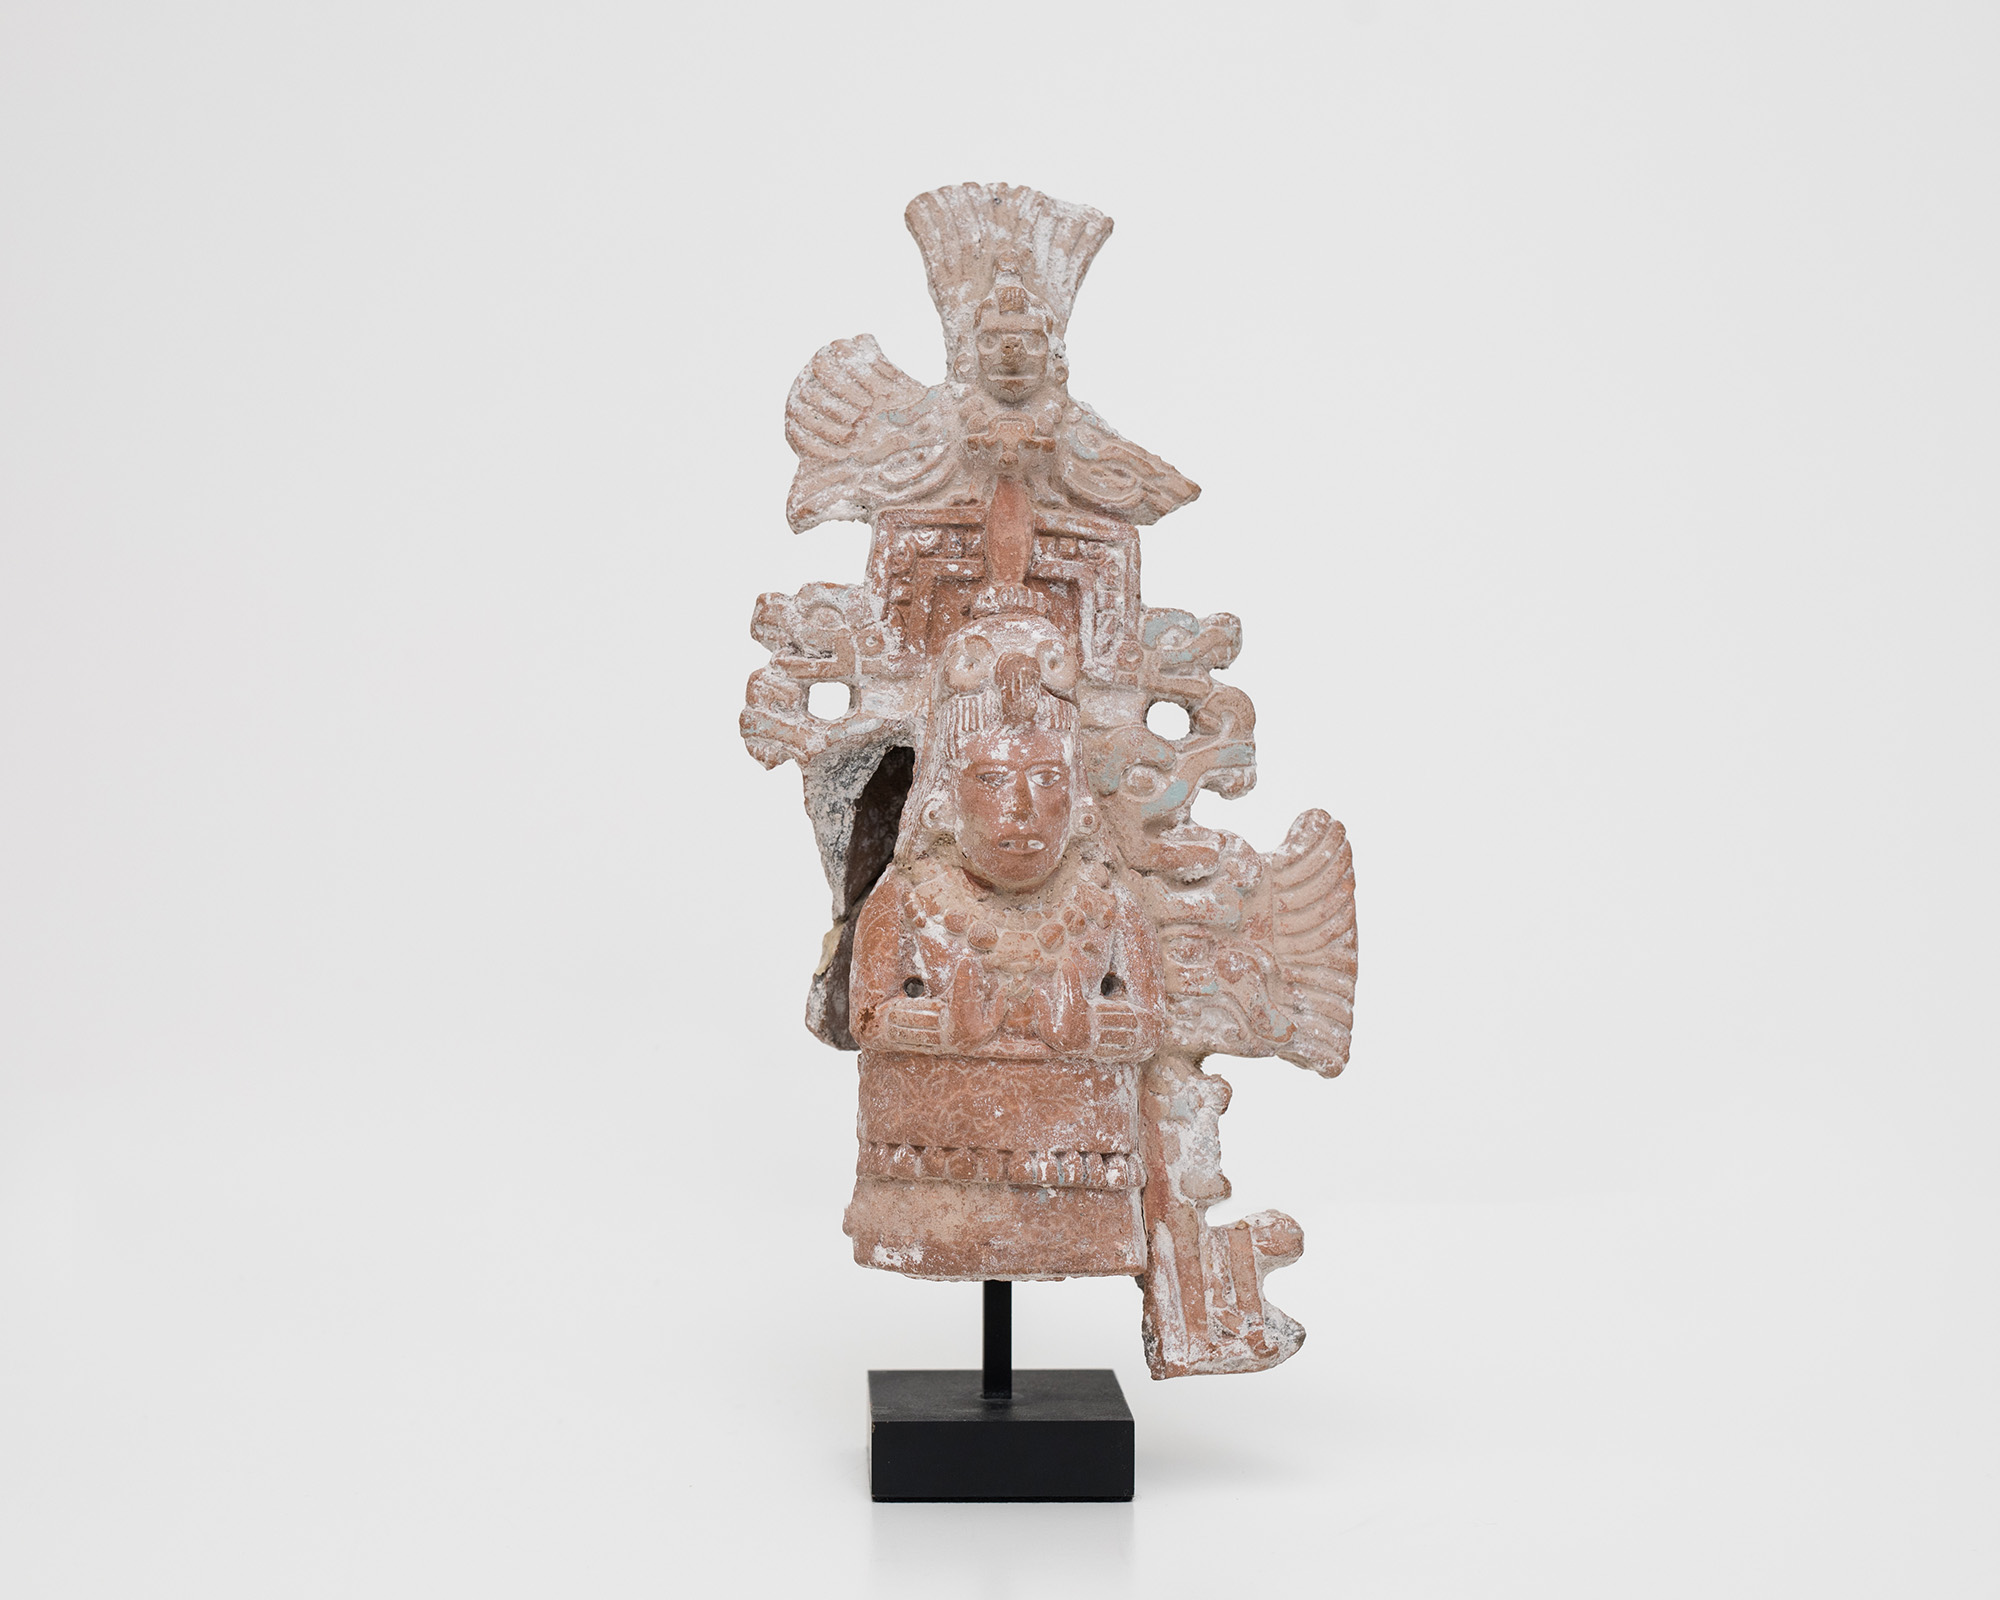 Mayan, Campeche, <i>Standing Priest with Elaborate Headdress with Rain-God Tlaloc extending from side</i>, ca. 700–900 AD. Eli and Edythe Broad Art Museum, Michigan State University, purchase, funded by the MSU Development Fund. Photo: Eat Pomegranate Photography